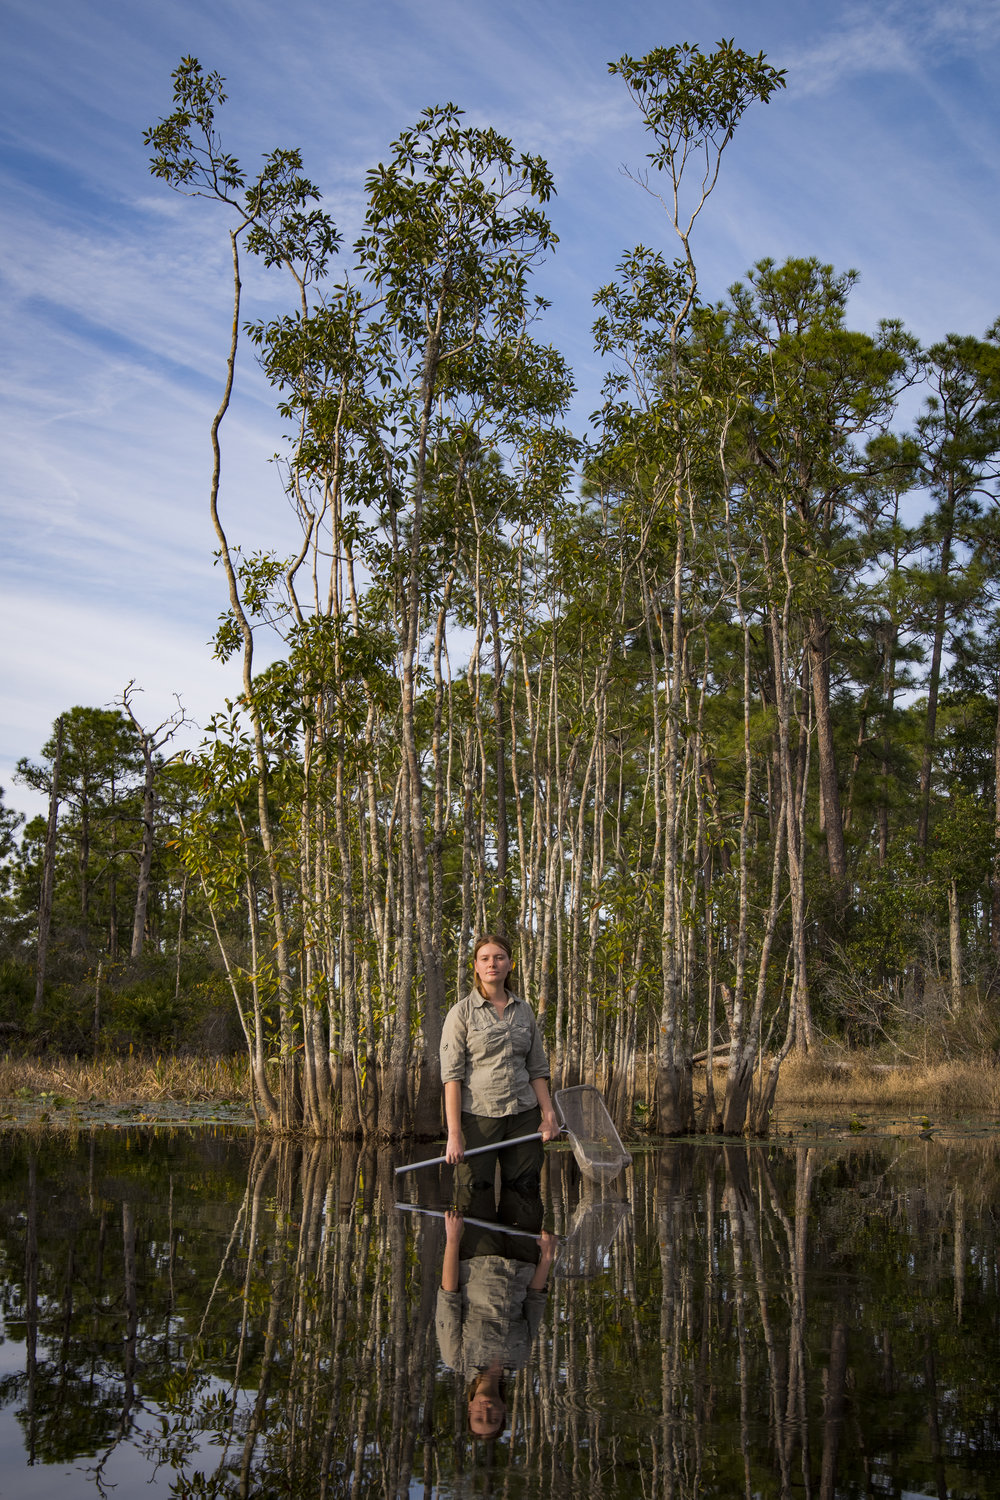 Lexi Siegle    Field Biology and Education   Archbold Biological Station  2019/1/25